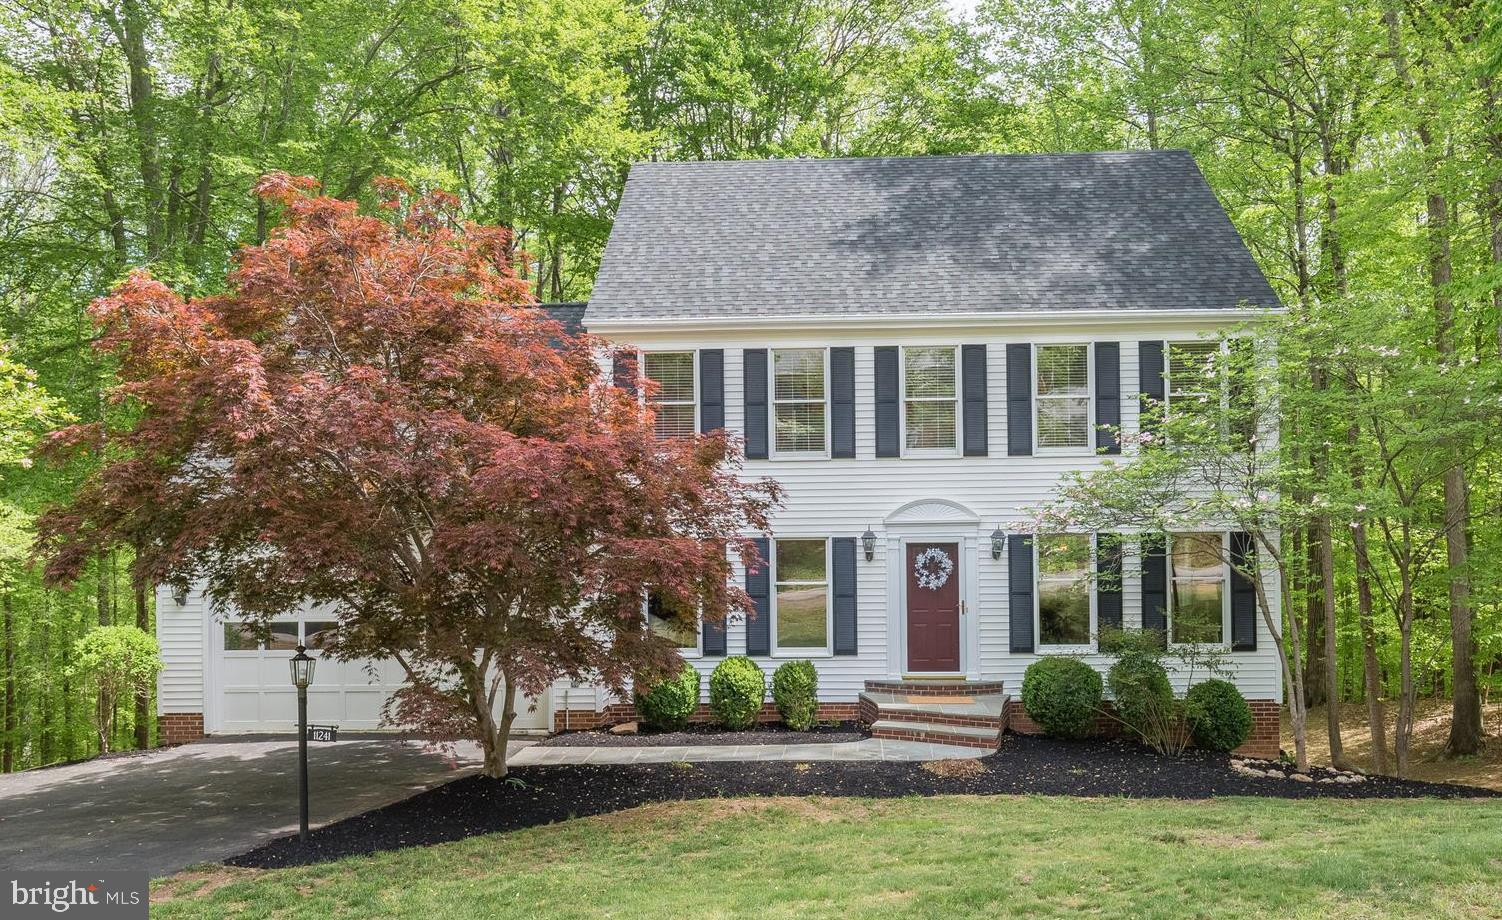 Professional photos on 4/24. Classic colonial in the Cannon Bluff Community! 4 bedrooms, 3.5 bathrooms on almost 2 acres, backing to woods and a small stream! Enjoy the peace and serenity from the 2-level deck. Nature lover~s paradise! Home is located on a quiet cul-de-sac in Colgan High School district. New roof, HVAC system and water heater. Freshly painted throughout and new carpets on the upper level. New hardwoods on main level. Gorgeous gourmet kitchen with stainless steel appliances and granite countertops. Expansive windows off the back of the home letting in lots of natural light. Separate formal living/dining rooms and home office. Upper level has a large master suite with separate sitting room. Newly renovated, spa-like bath with granite counter tops, jetted tub, vaulted ceiling, skylights and plantation shutters. 3 additional bedrooms and a full hall bath. Large, walkout, lower level rec room with full bathroom and wood burning stove. Ample room for storage. The Neighborhood Association maintains a 12-acre park with walking trails, boat ramp & dock on the Occoquan River. Canoe, boat, fish and hike within walking distance from your new home! Septic/Water/Well inspections already completed! Don't miss out!